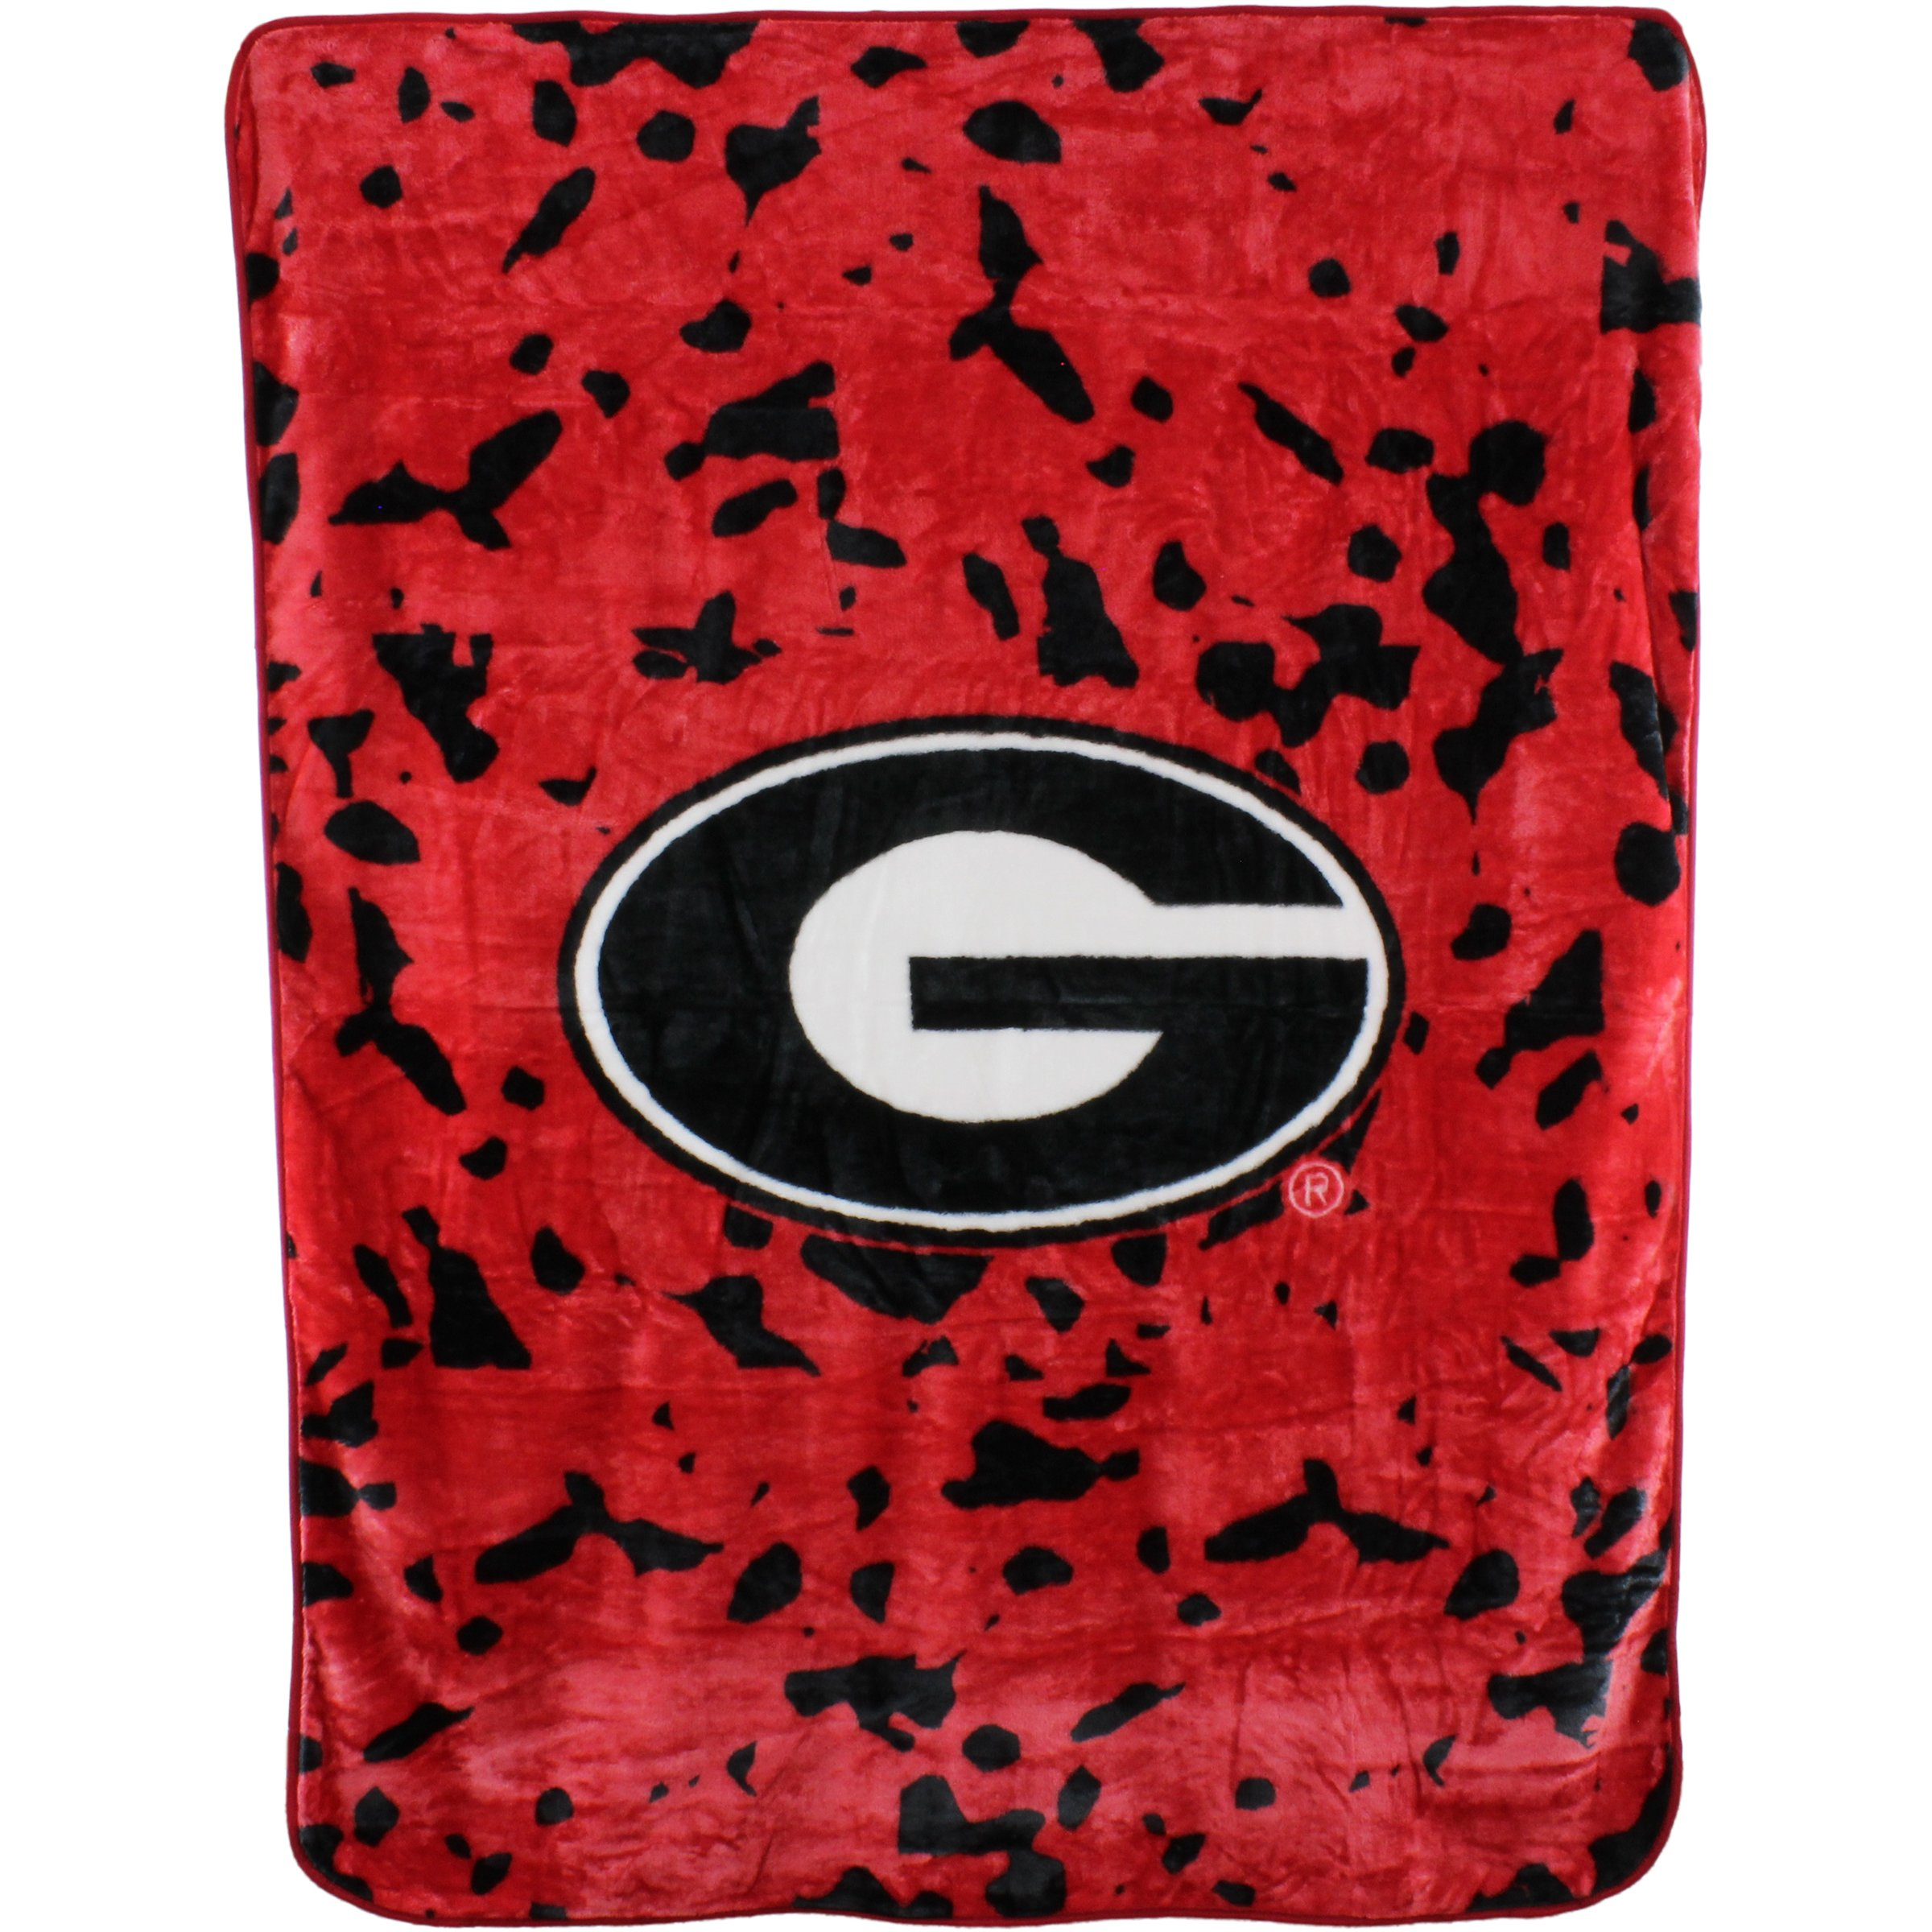 College Covers Georgia Bulldogs Throw Blanket/Bedspread